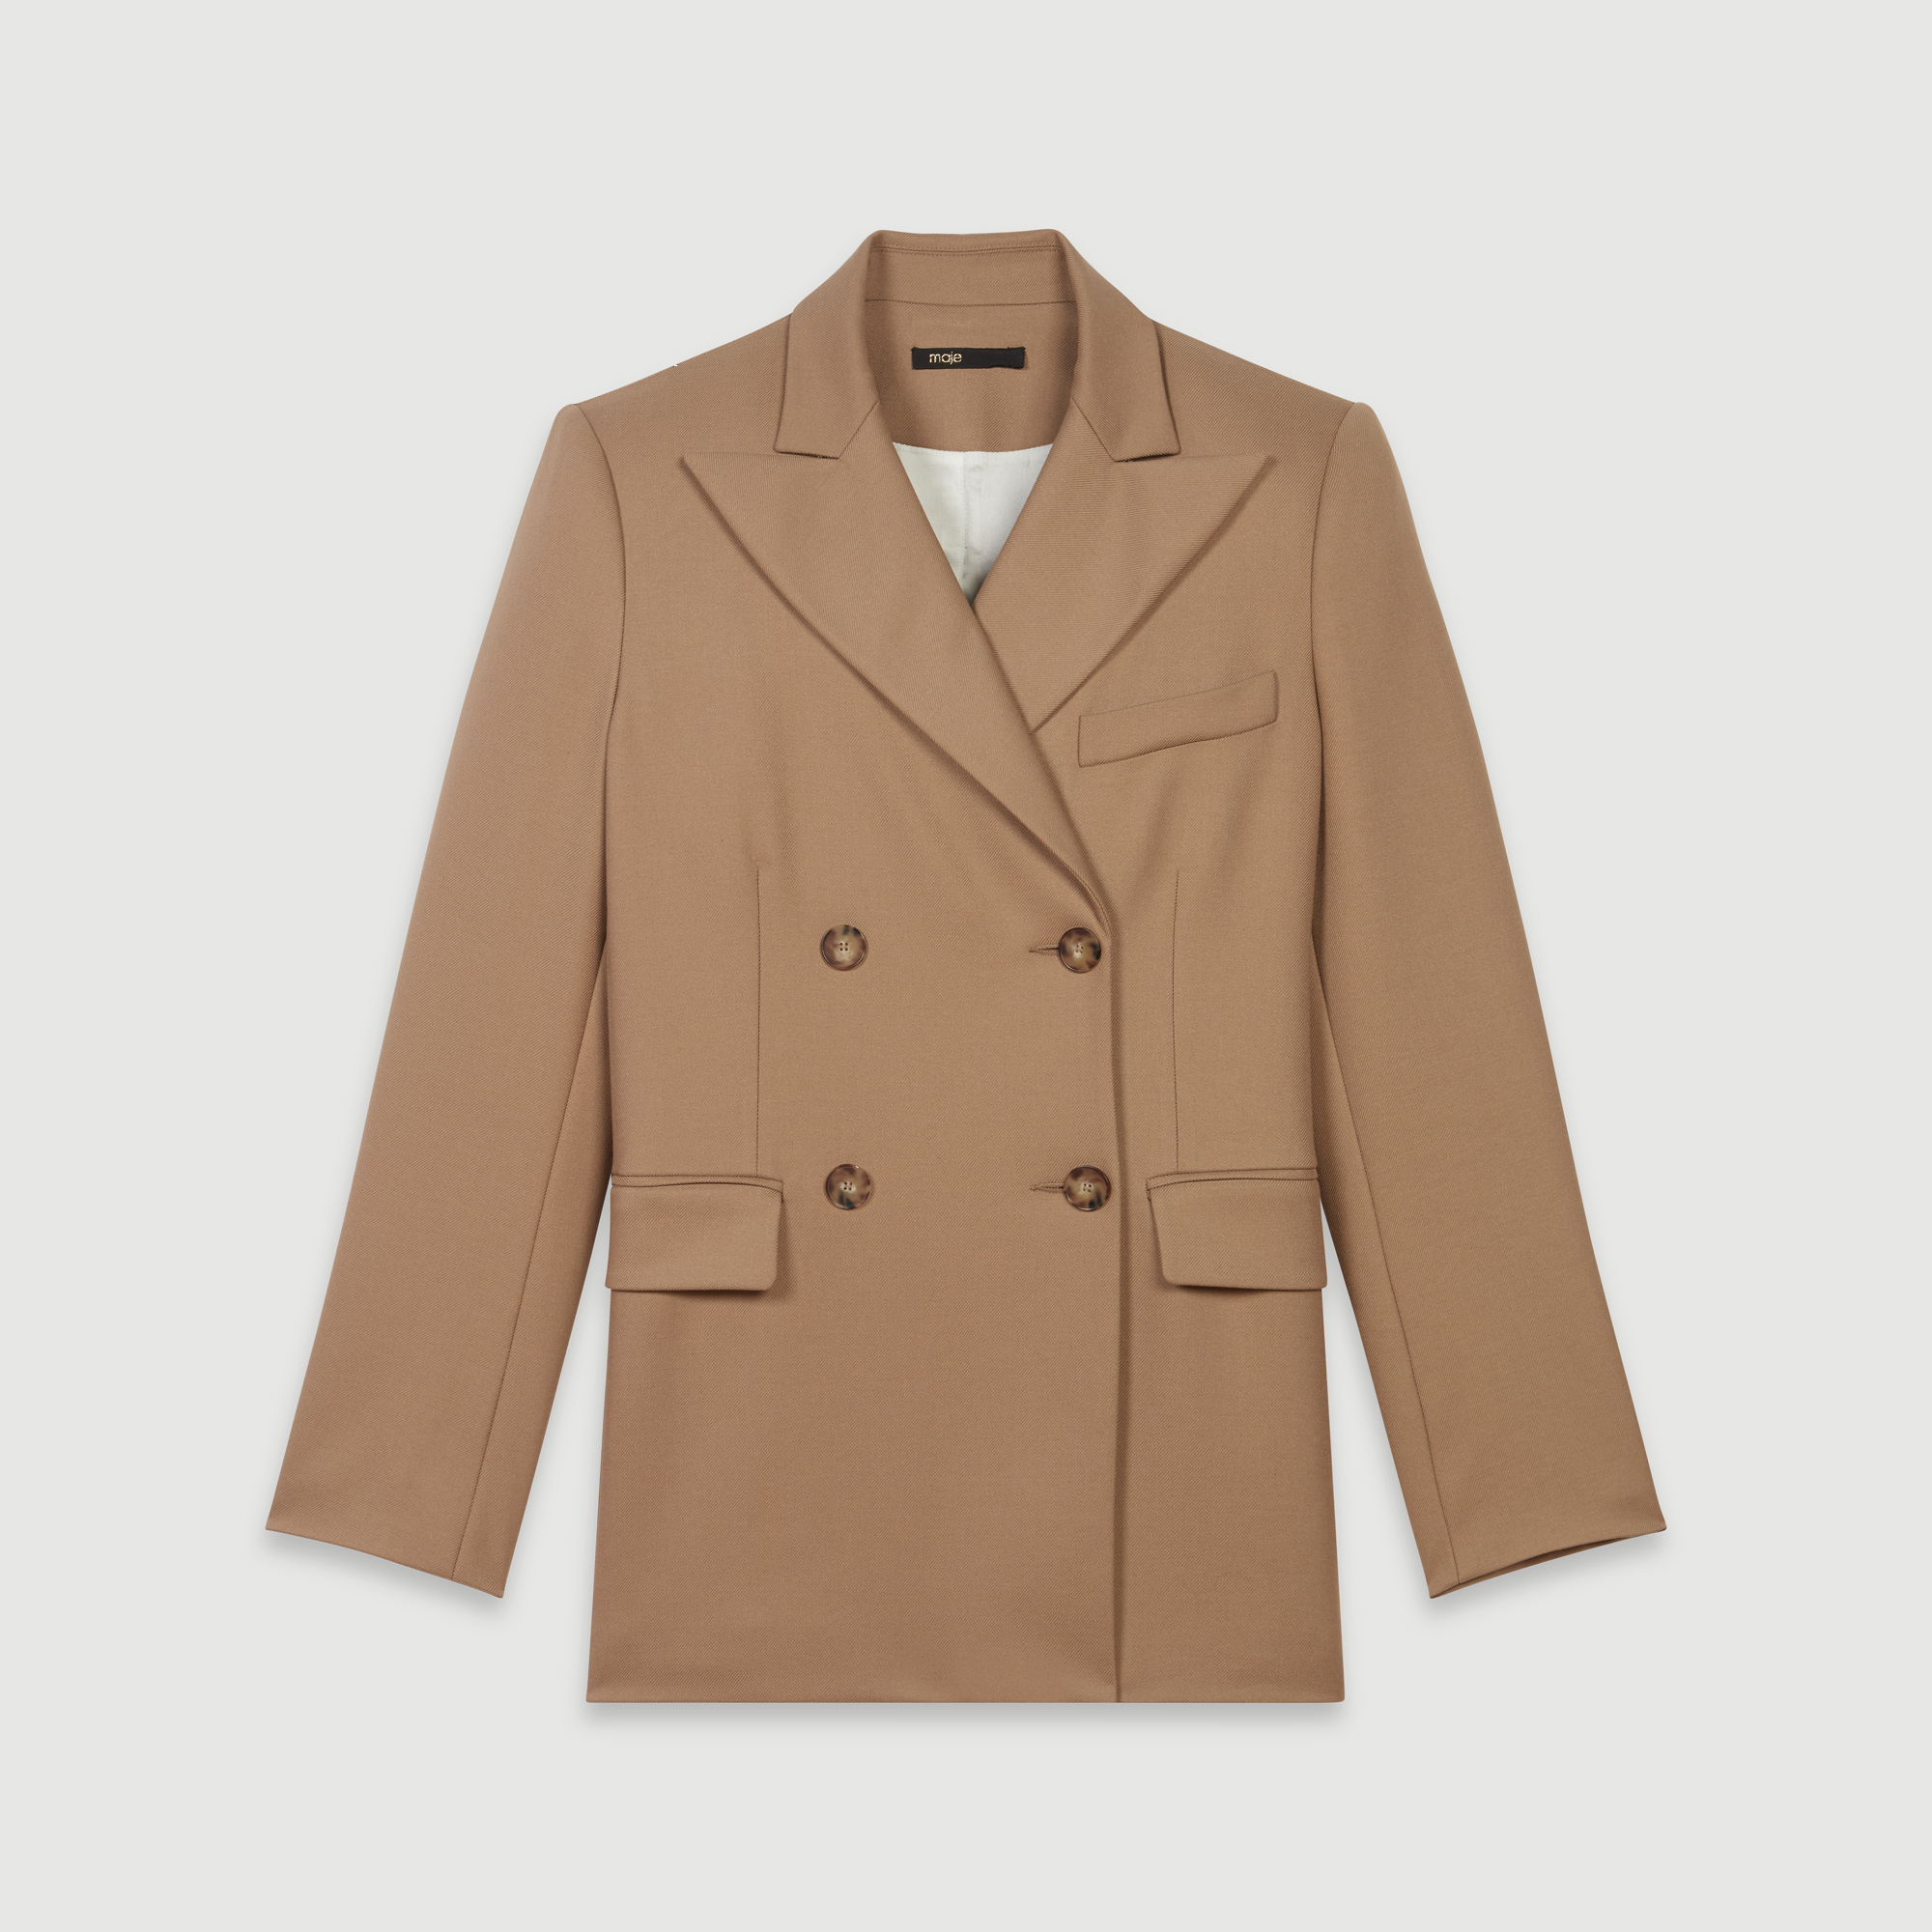 Straight cut double breasted jacket - Camel